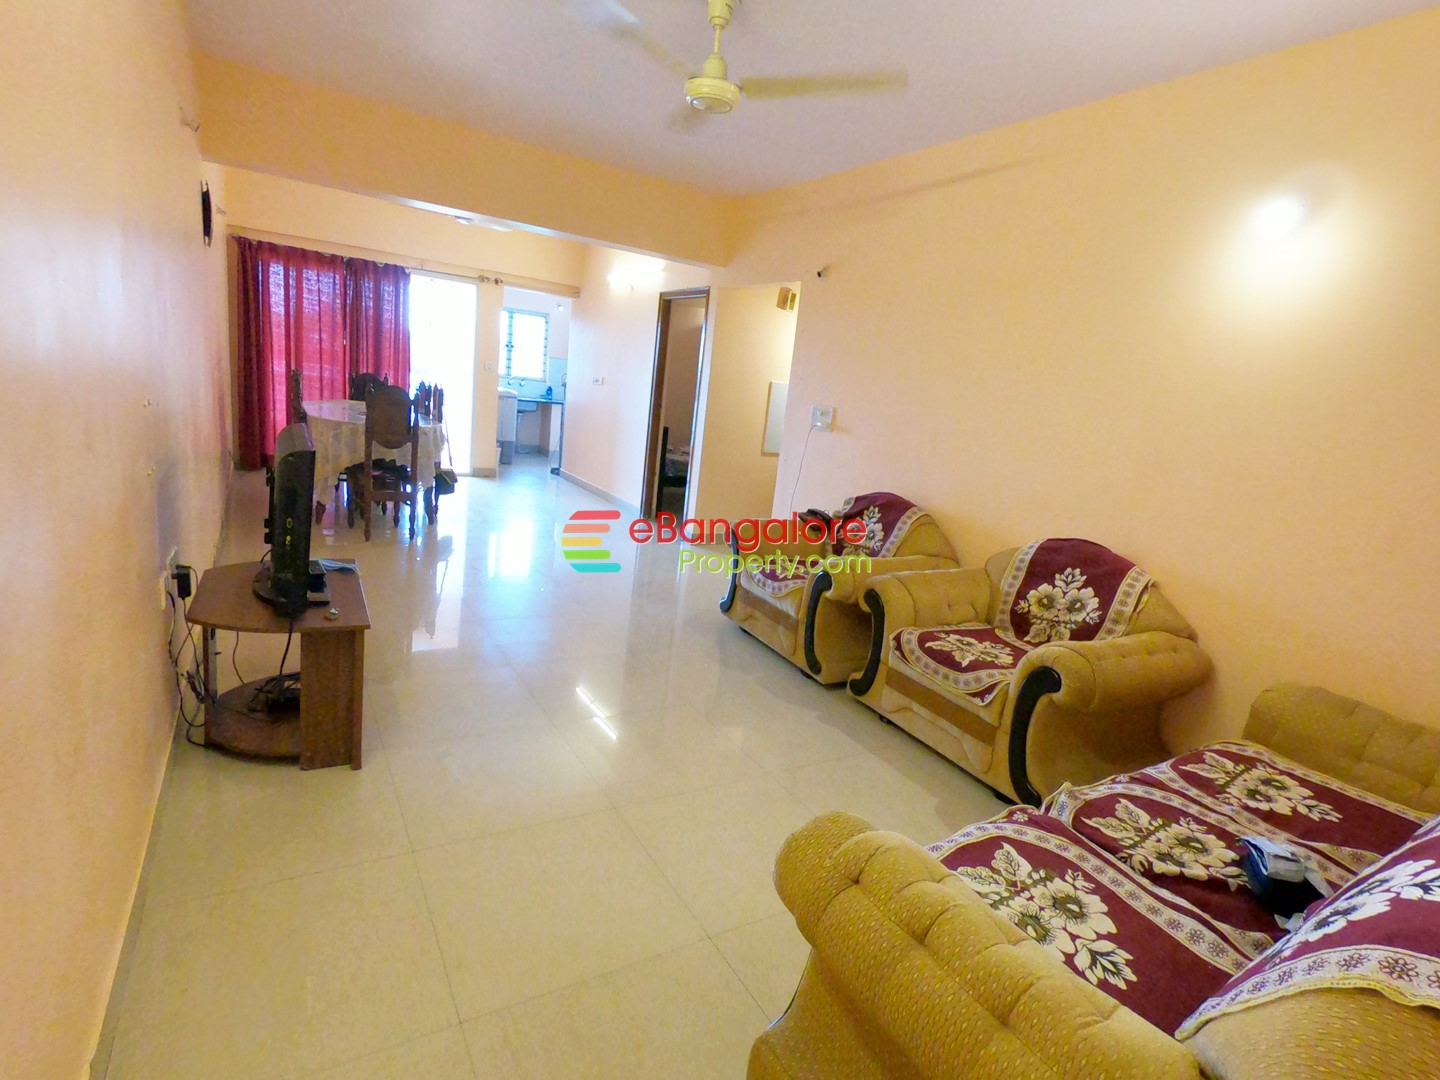 Frazer Town – 2BHK Apartment For Resale in Posh Location – With A Khata